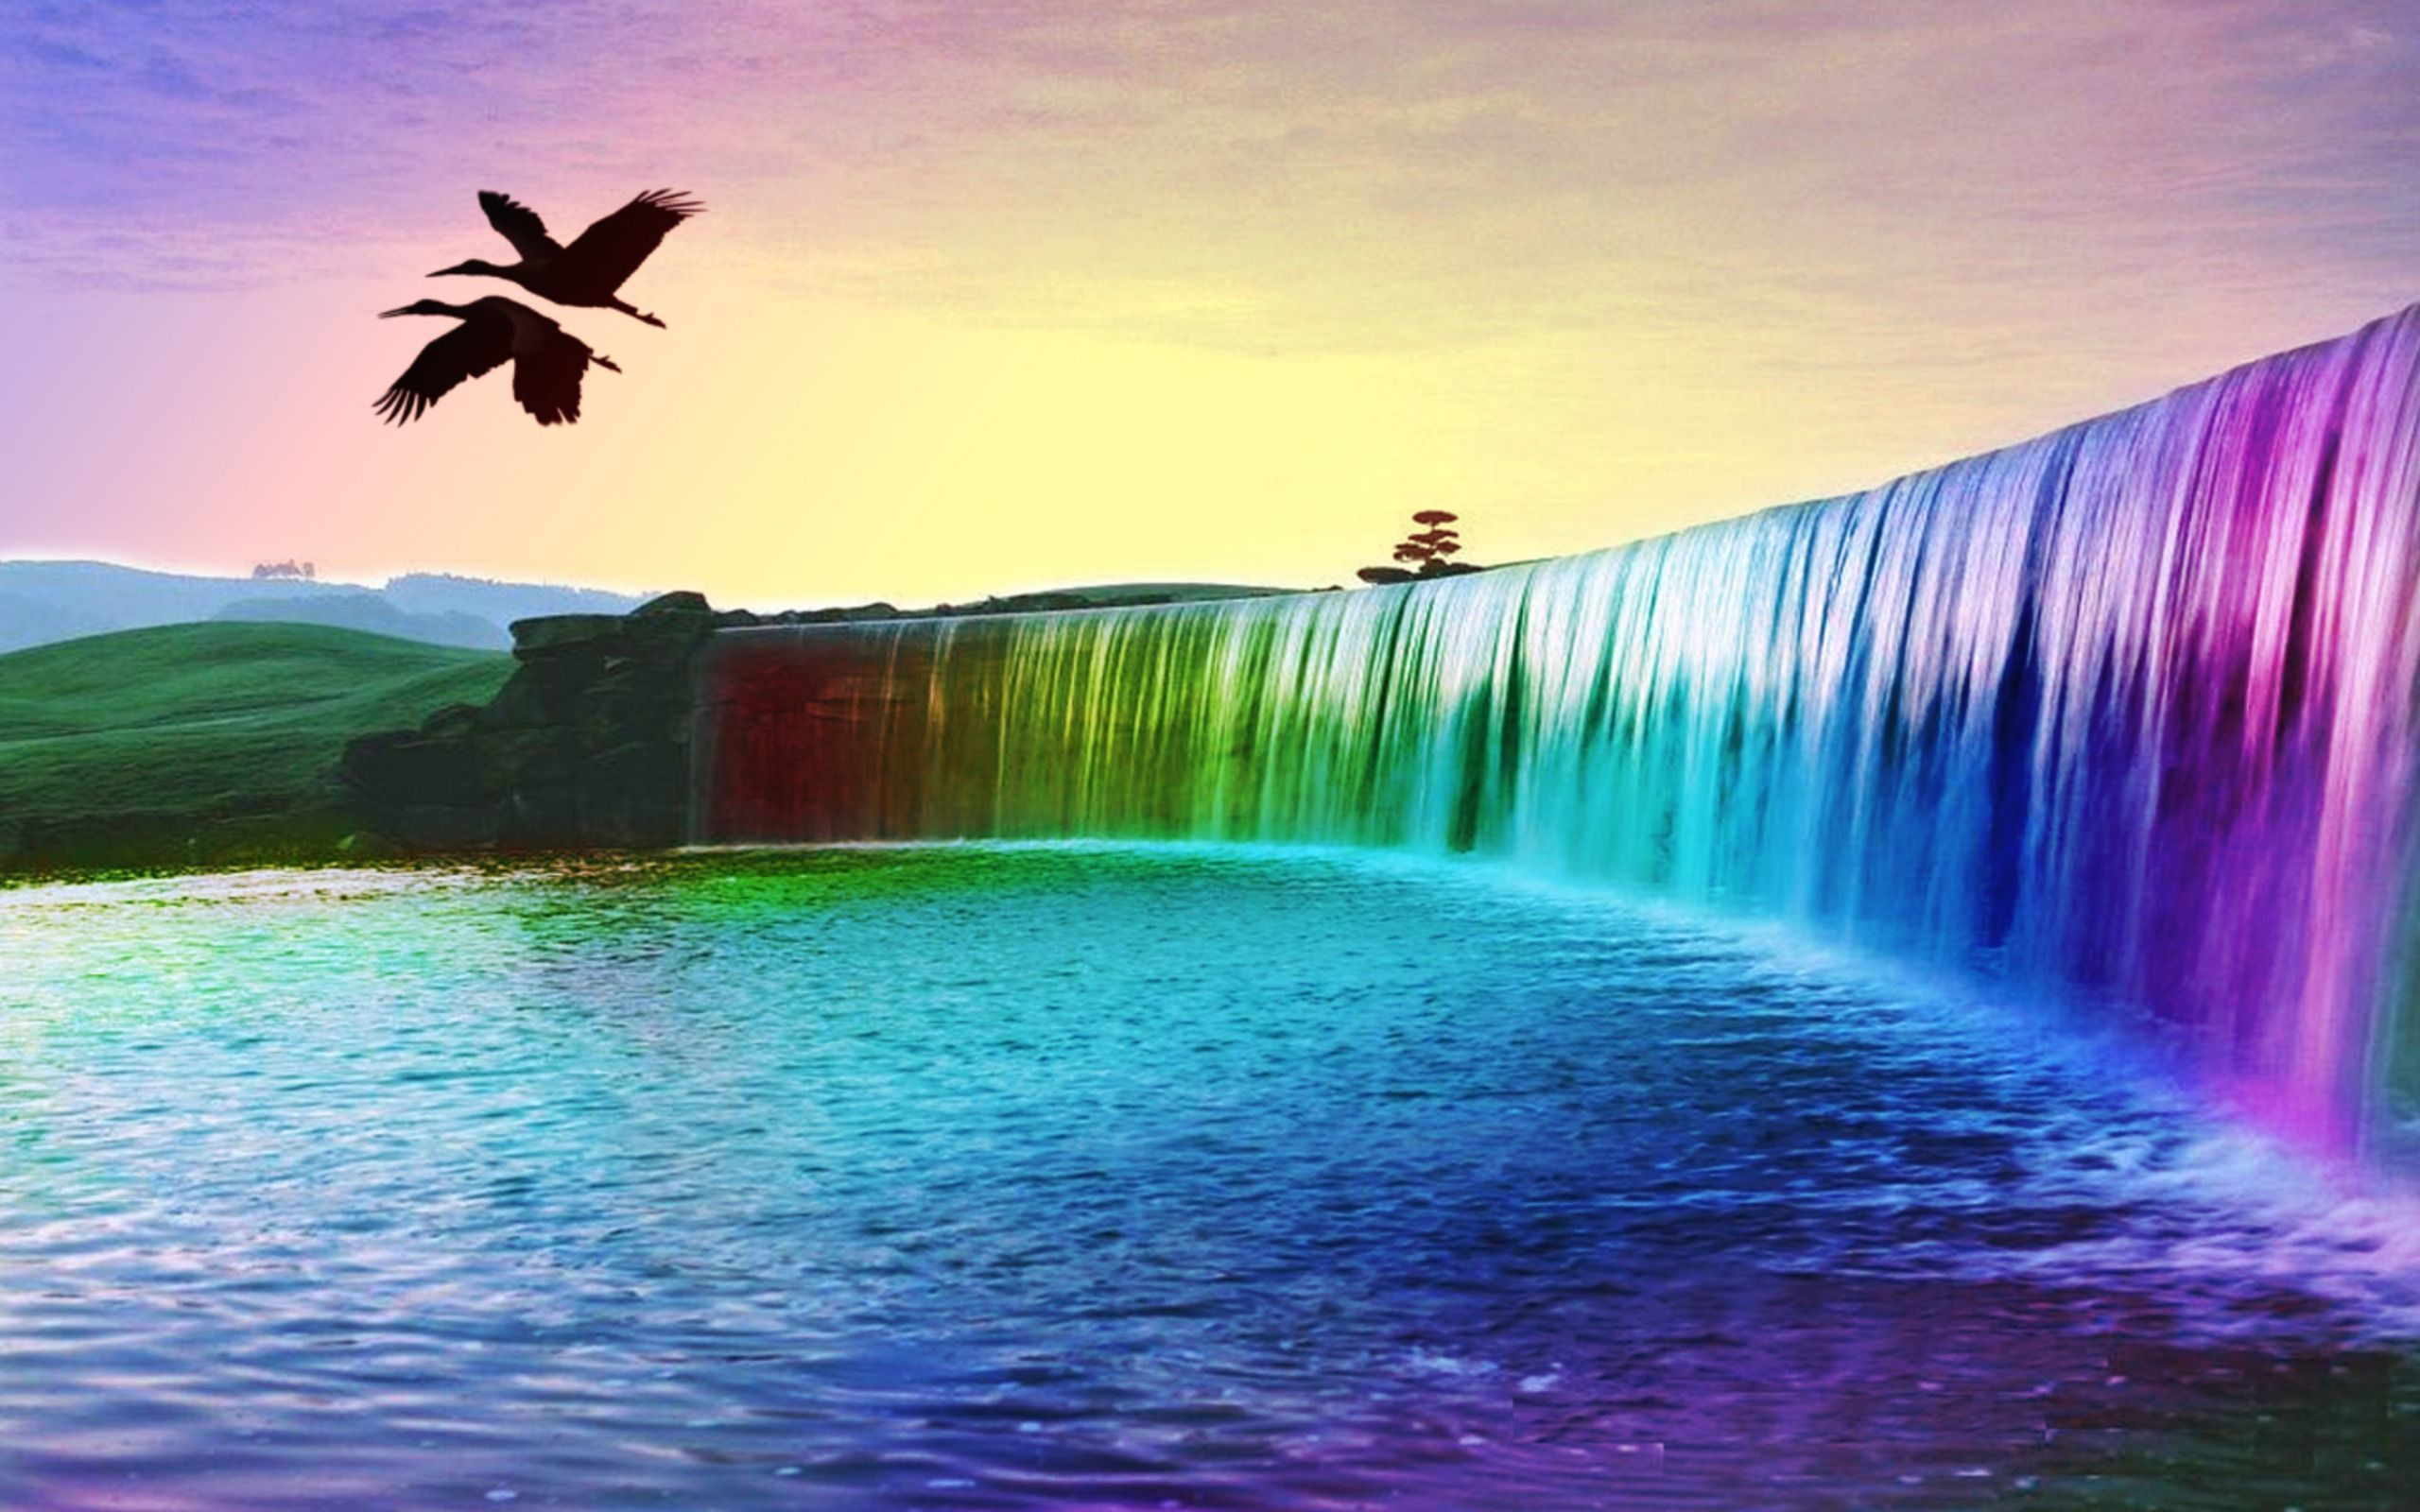 Water Nature Wallpapers Top Free Water Nature Backgrounds Wallpaperaccess